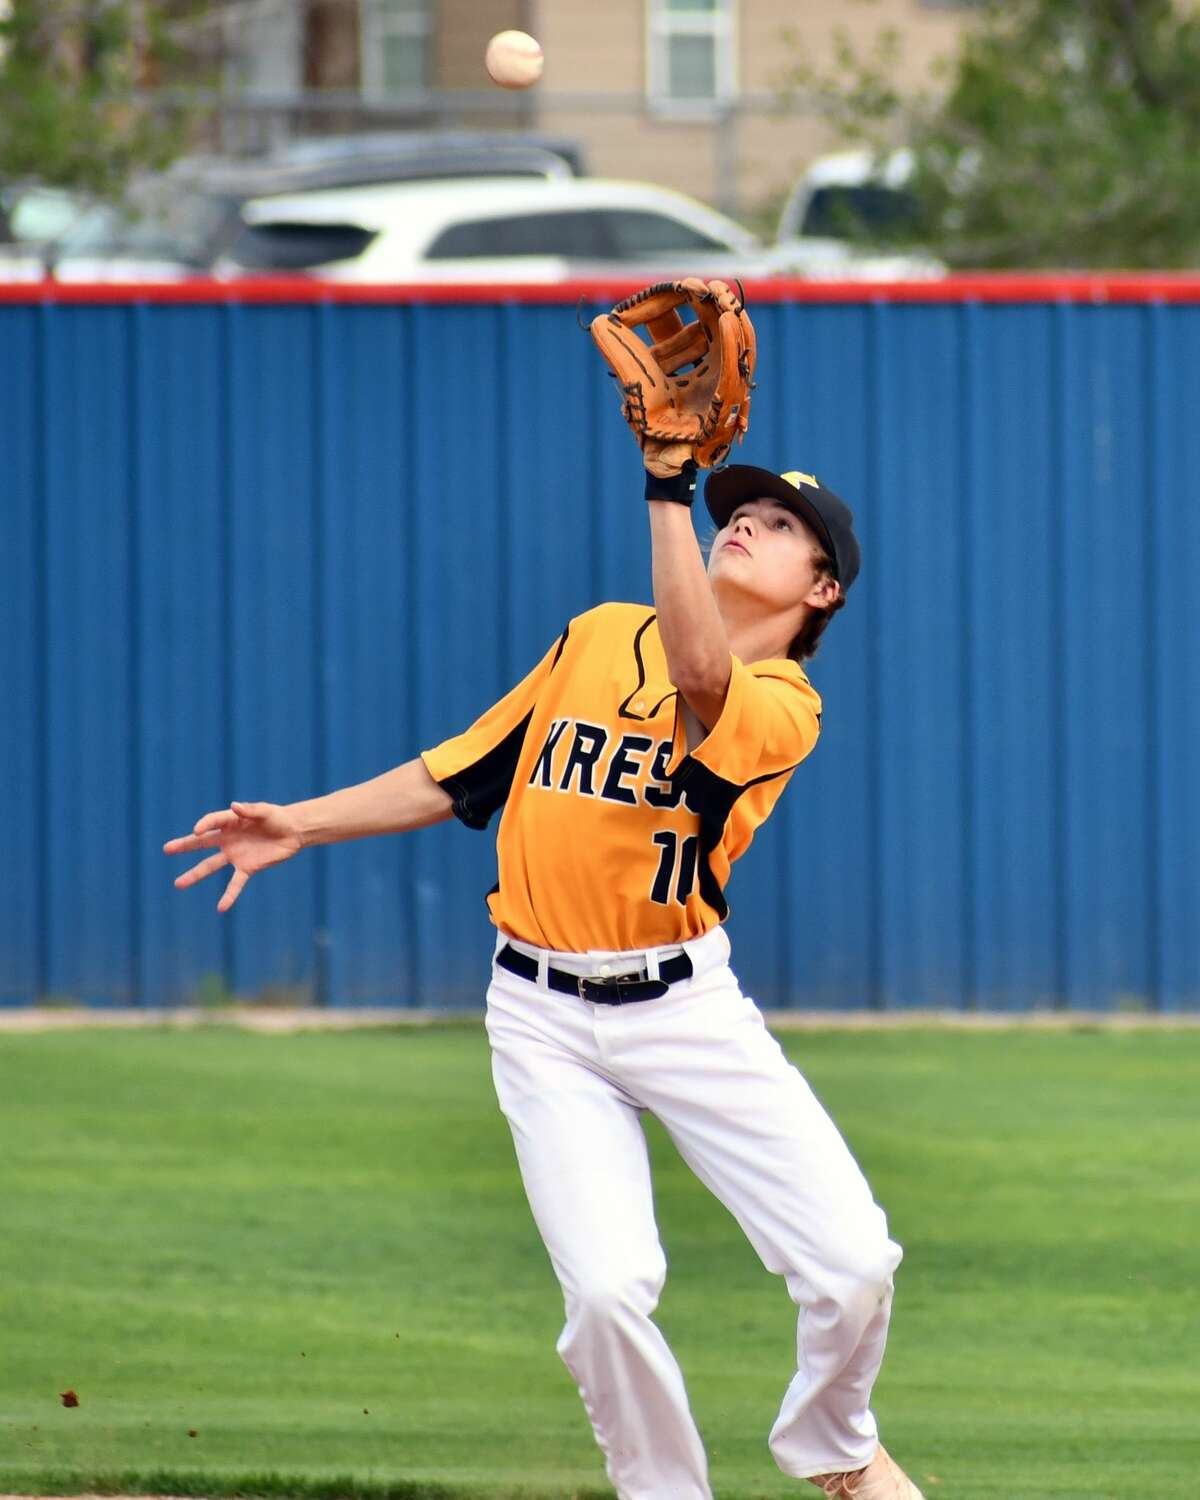 Kress' Landry Young awaits the catch of a popup during the Region 1-1A region semifinals against Nazareth on Tuesday at Bulldog Park in Plainview.